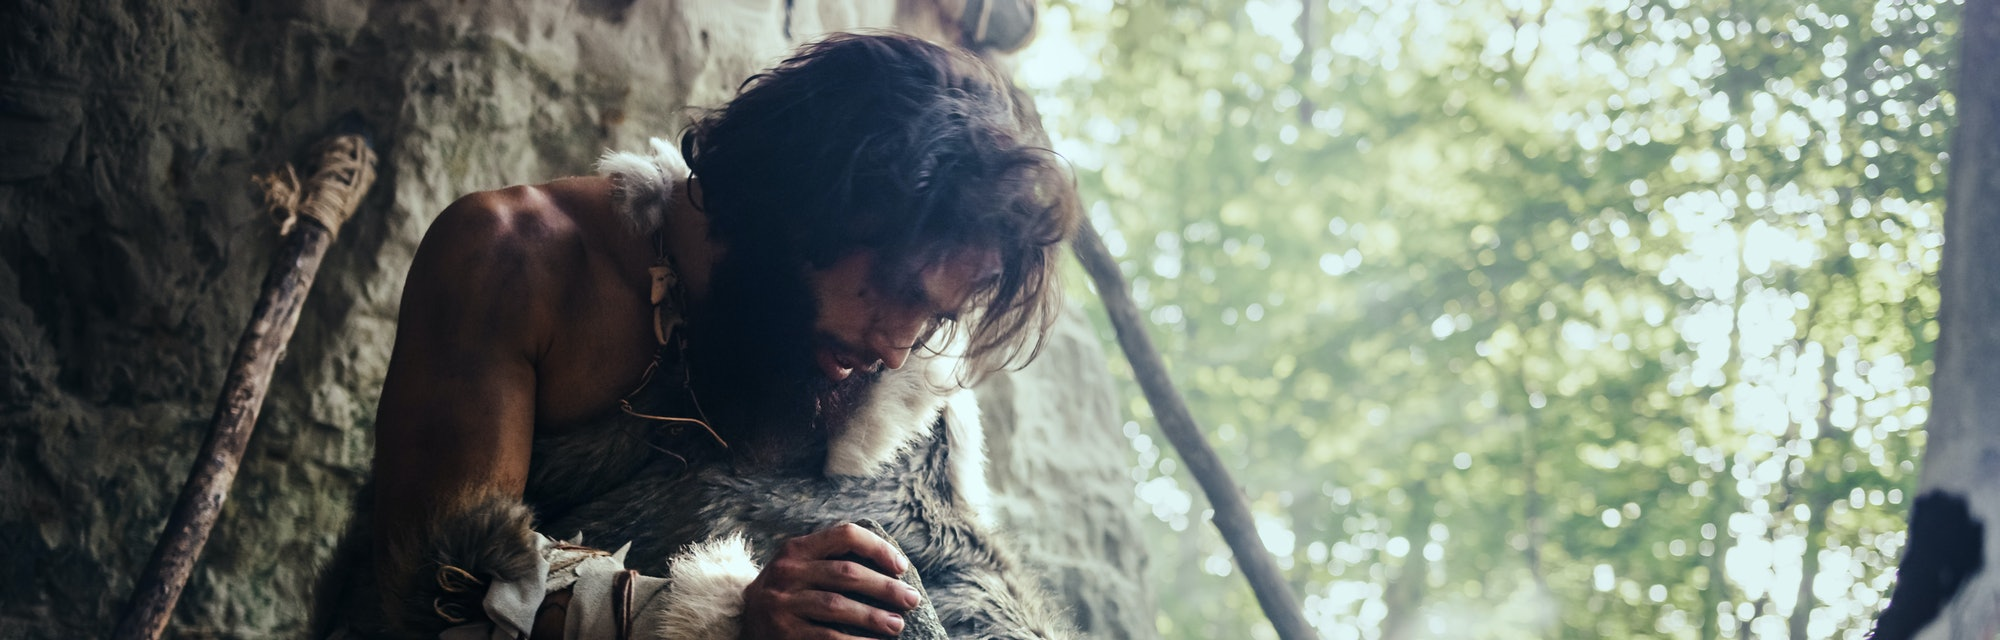 Primeval Caveman Wearing Animal Skin Hits Rock with Sharp Stone and Makes First Primitive Tool for H...